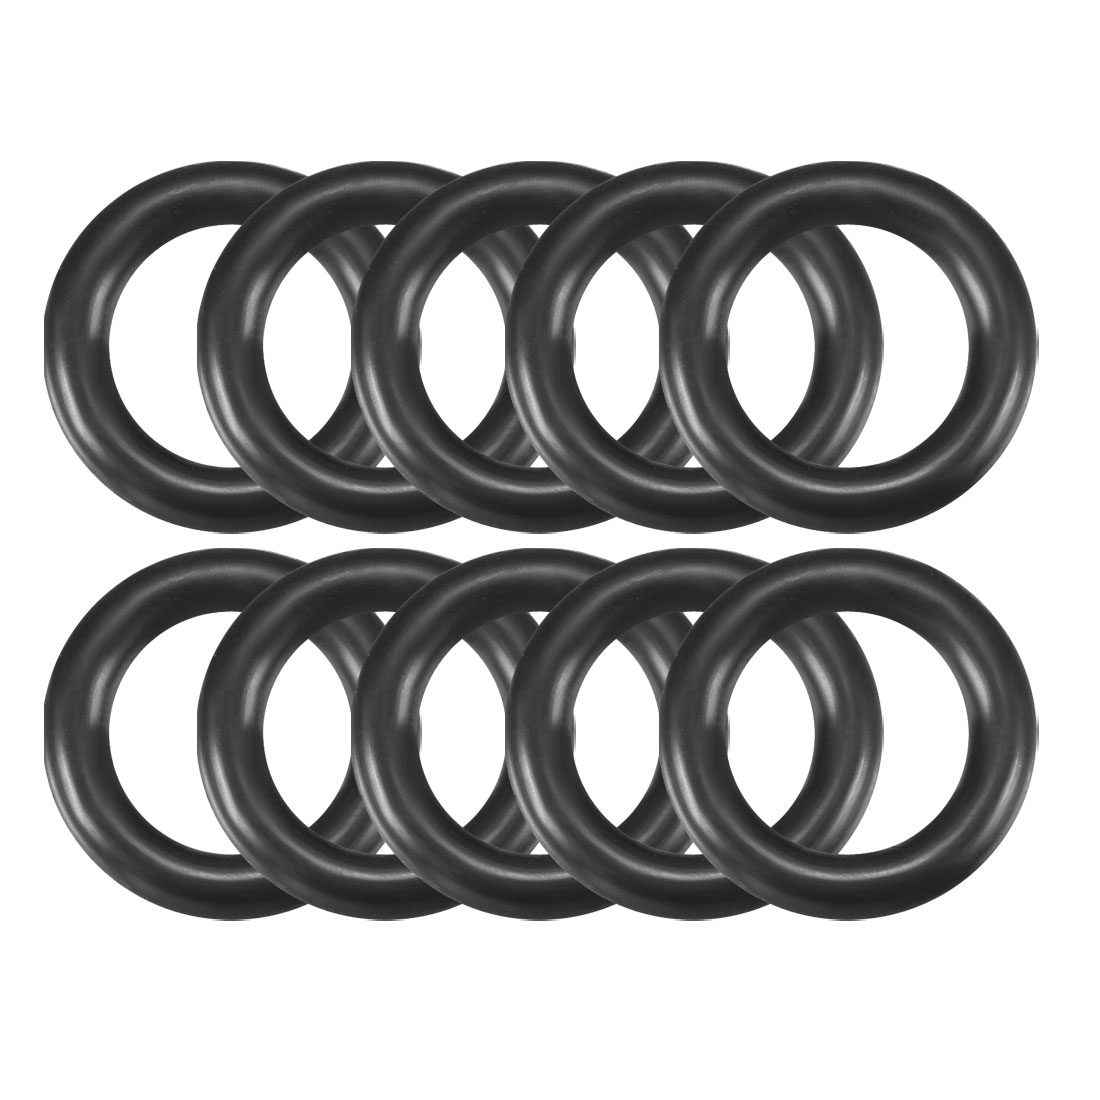 10 Pcs x 13mm Outside Dia 2.4mm Thick Rubber O Rings Gaskets Black